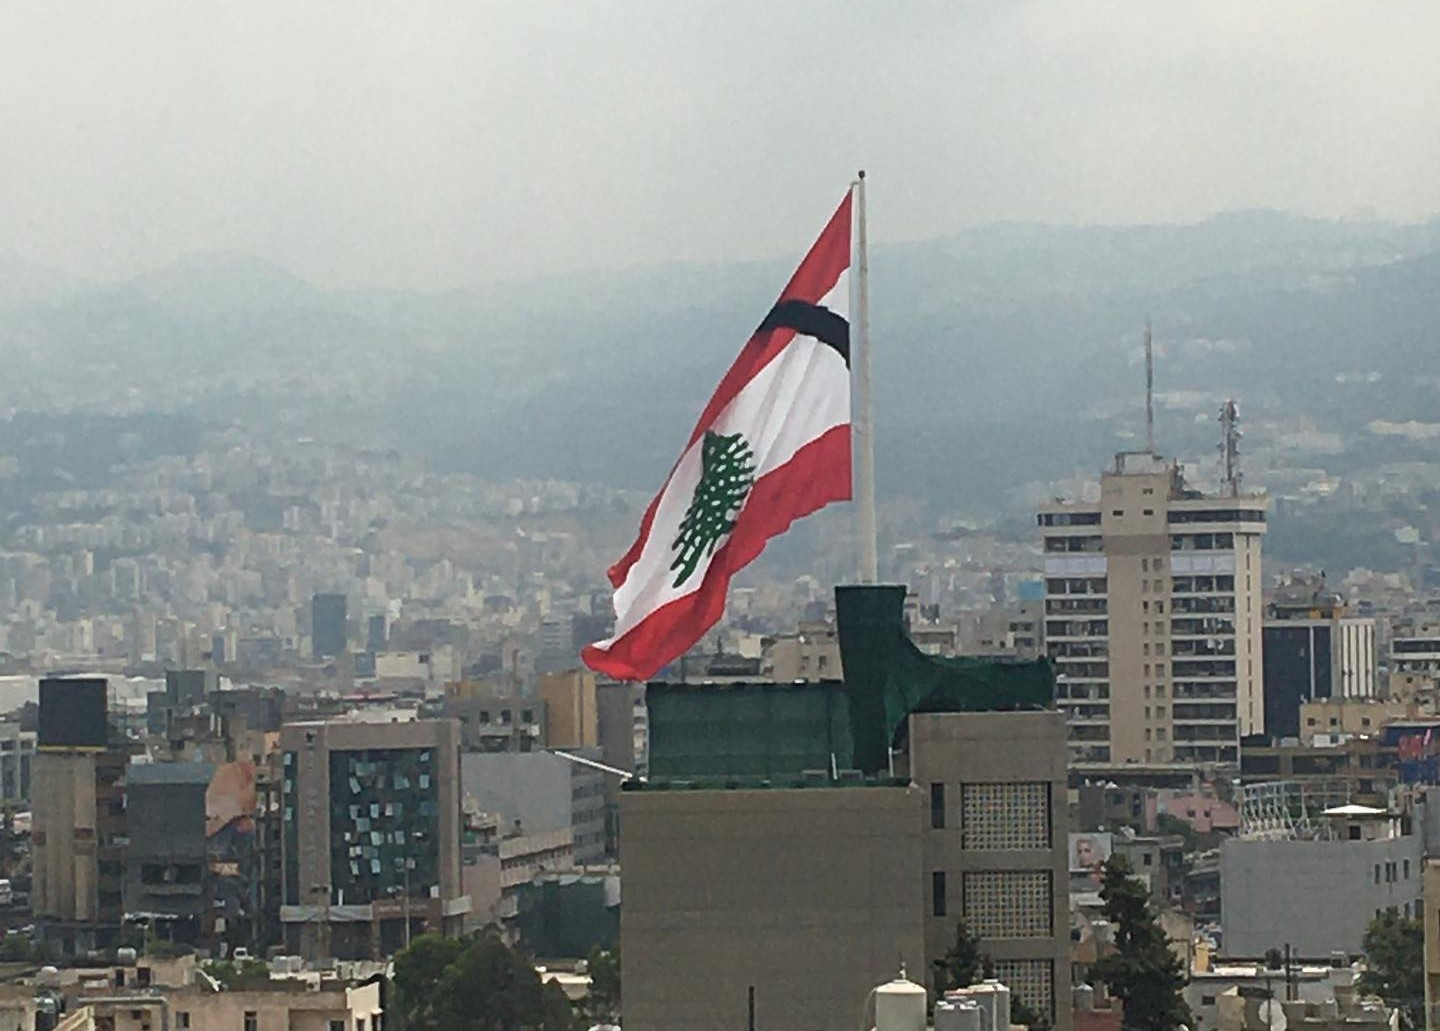 Unrest in Lebanon could lead to more chilling problems